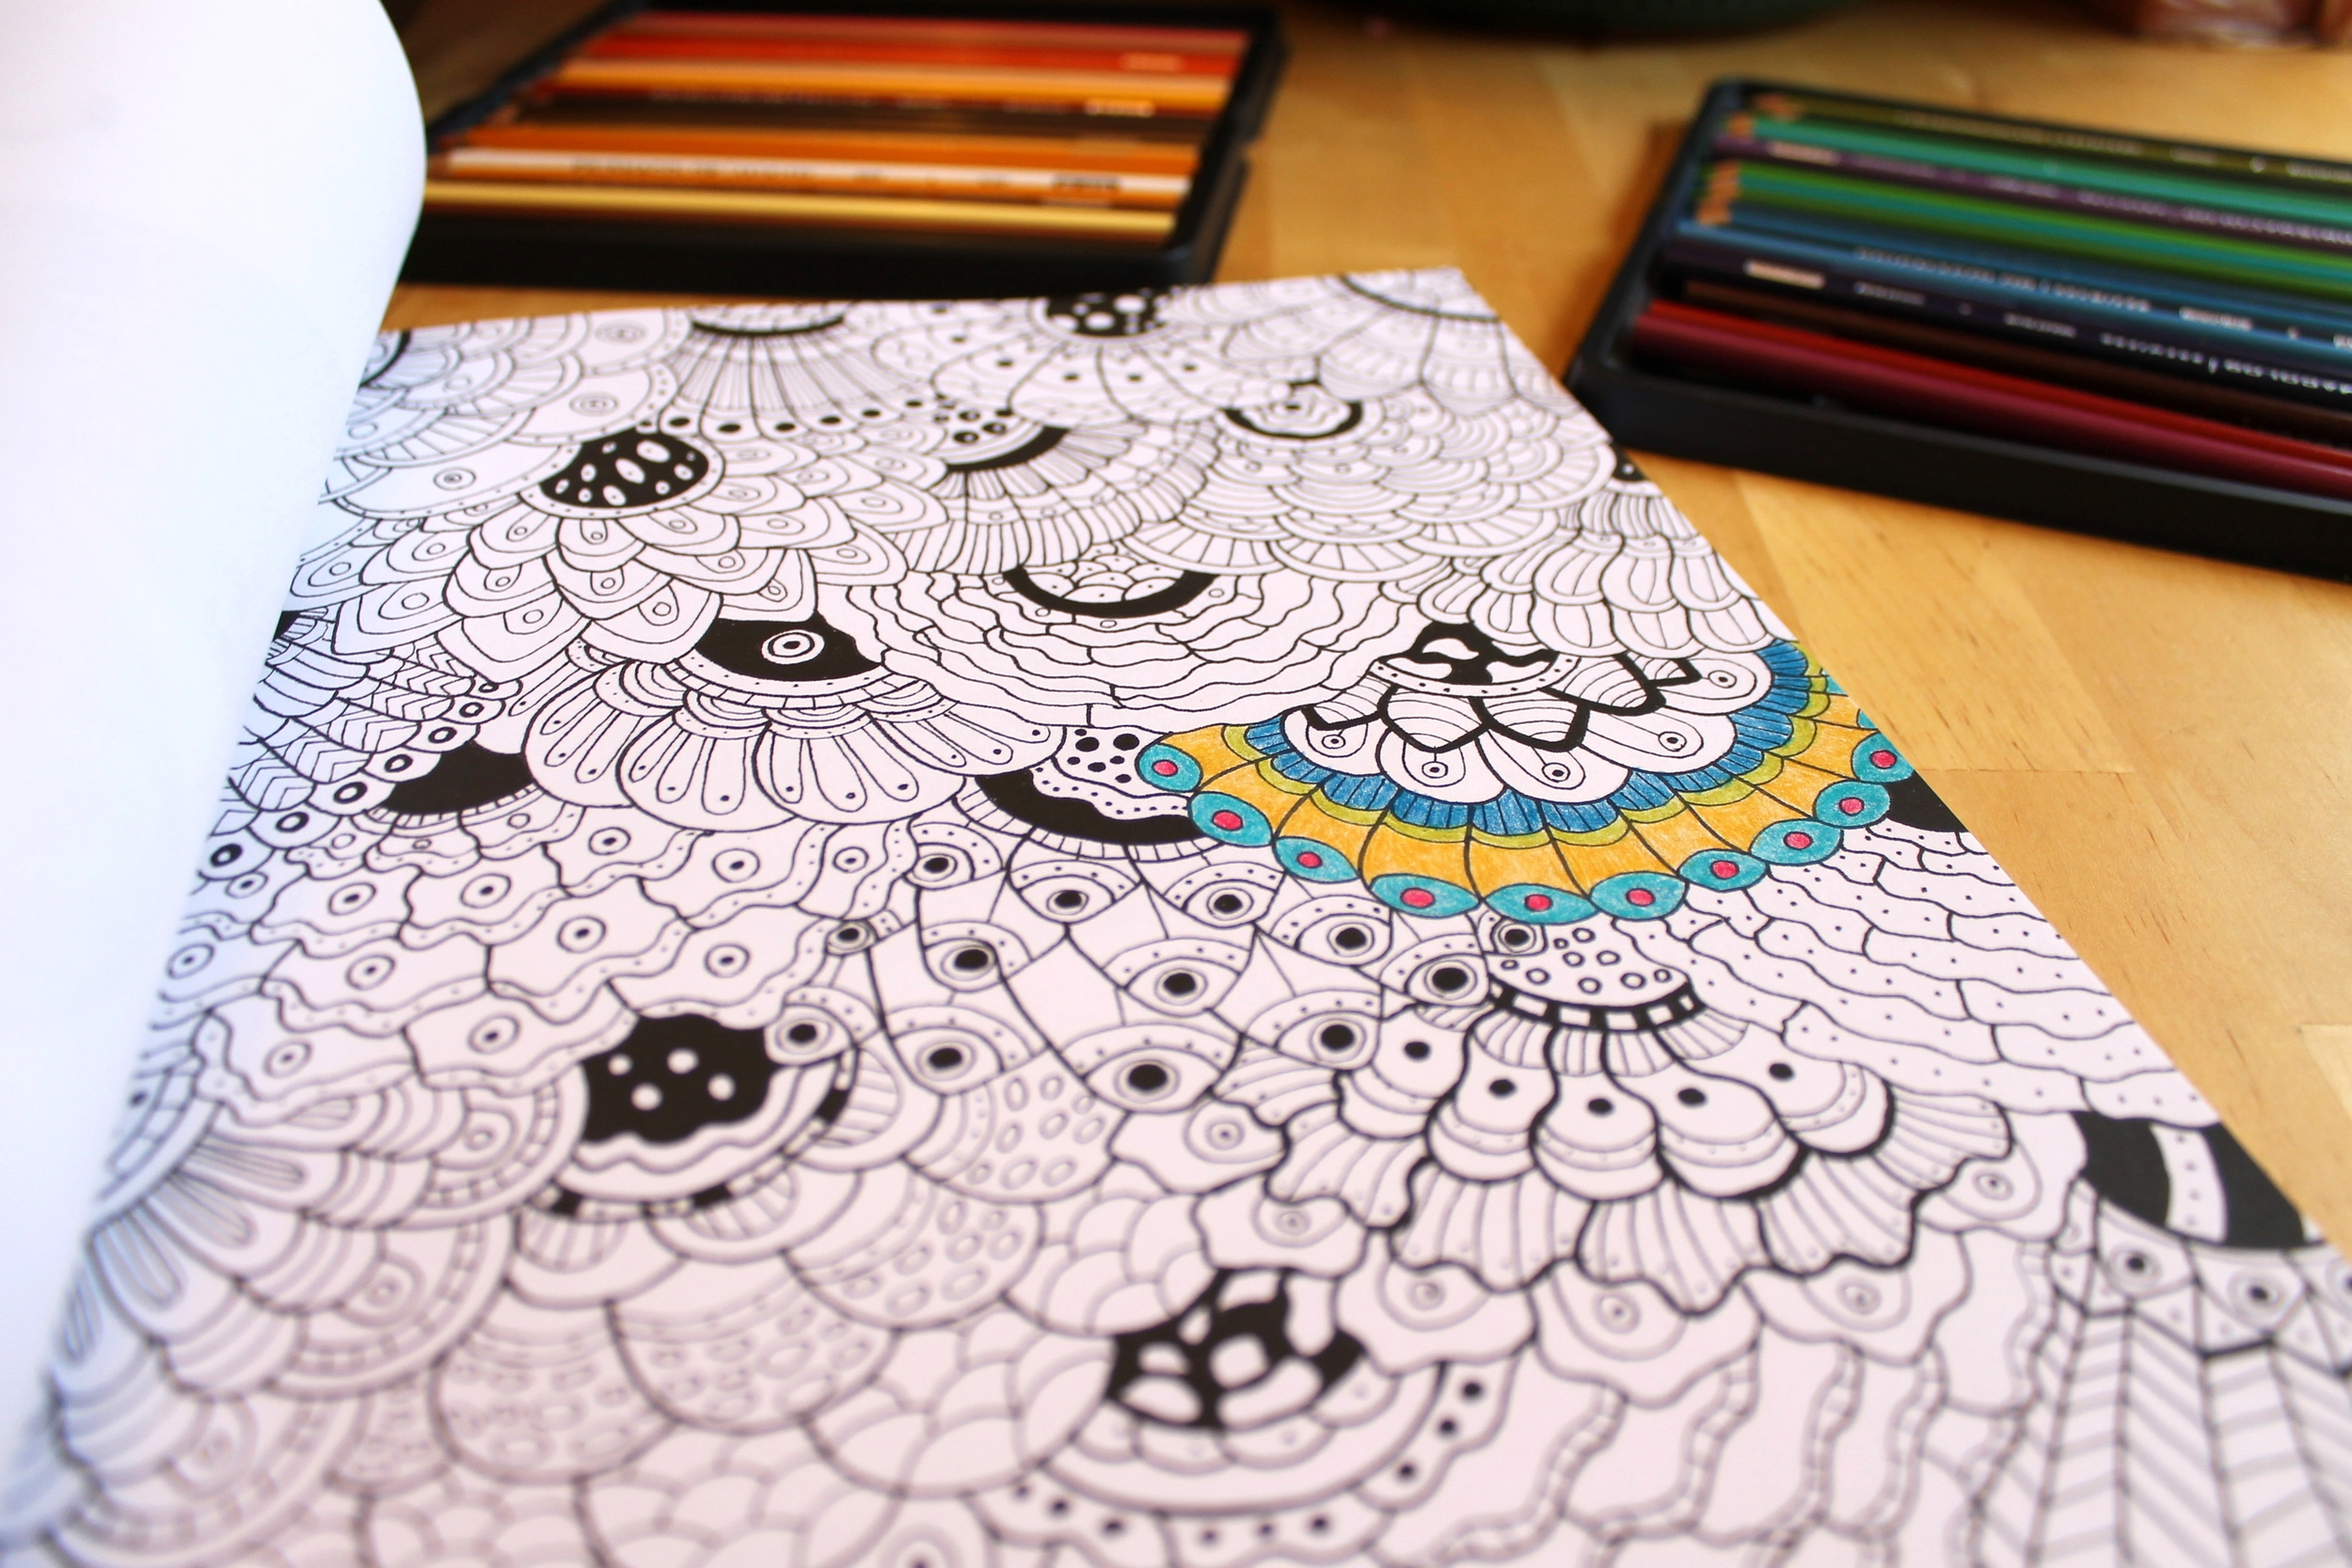 Aflutter adult coloring book by Sereen Gualtieri